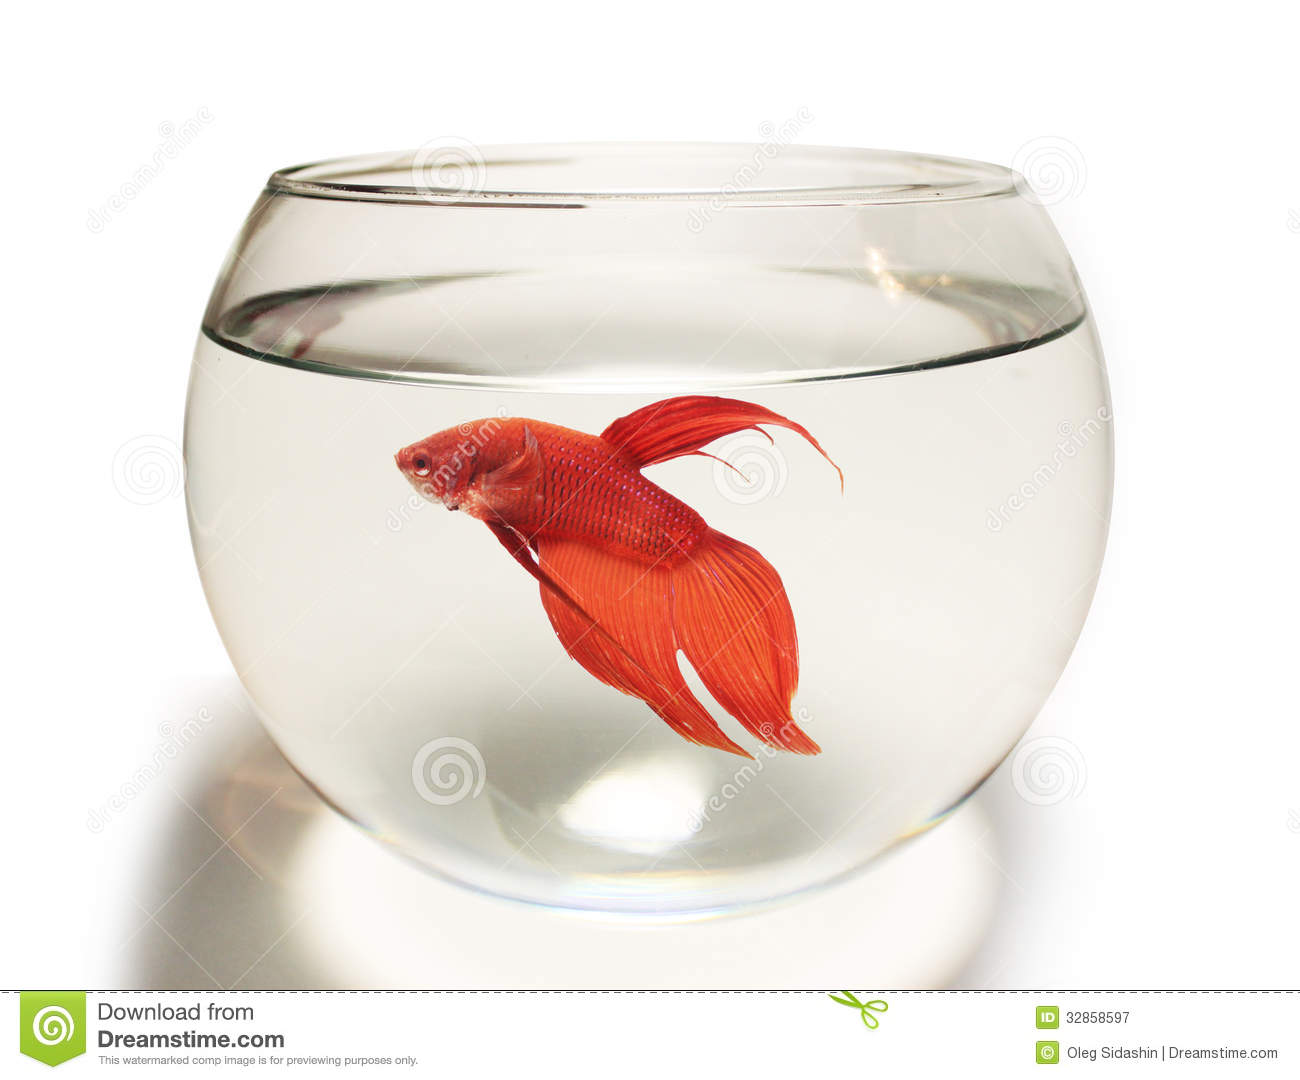 Siamese Fighting Fish Aquarium | Siamese Fighting Fish Betta Fish In Aquarium Stock Image Image